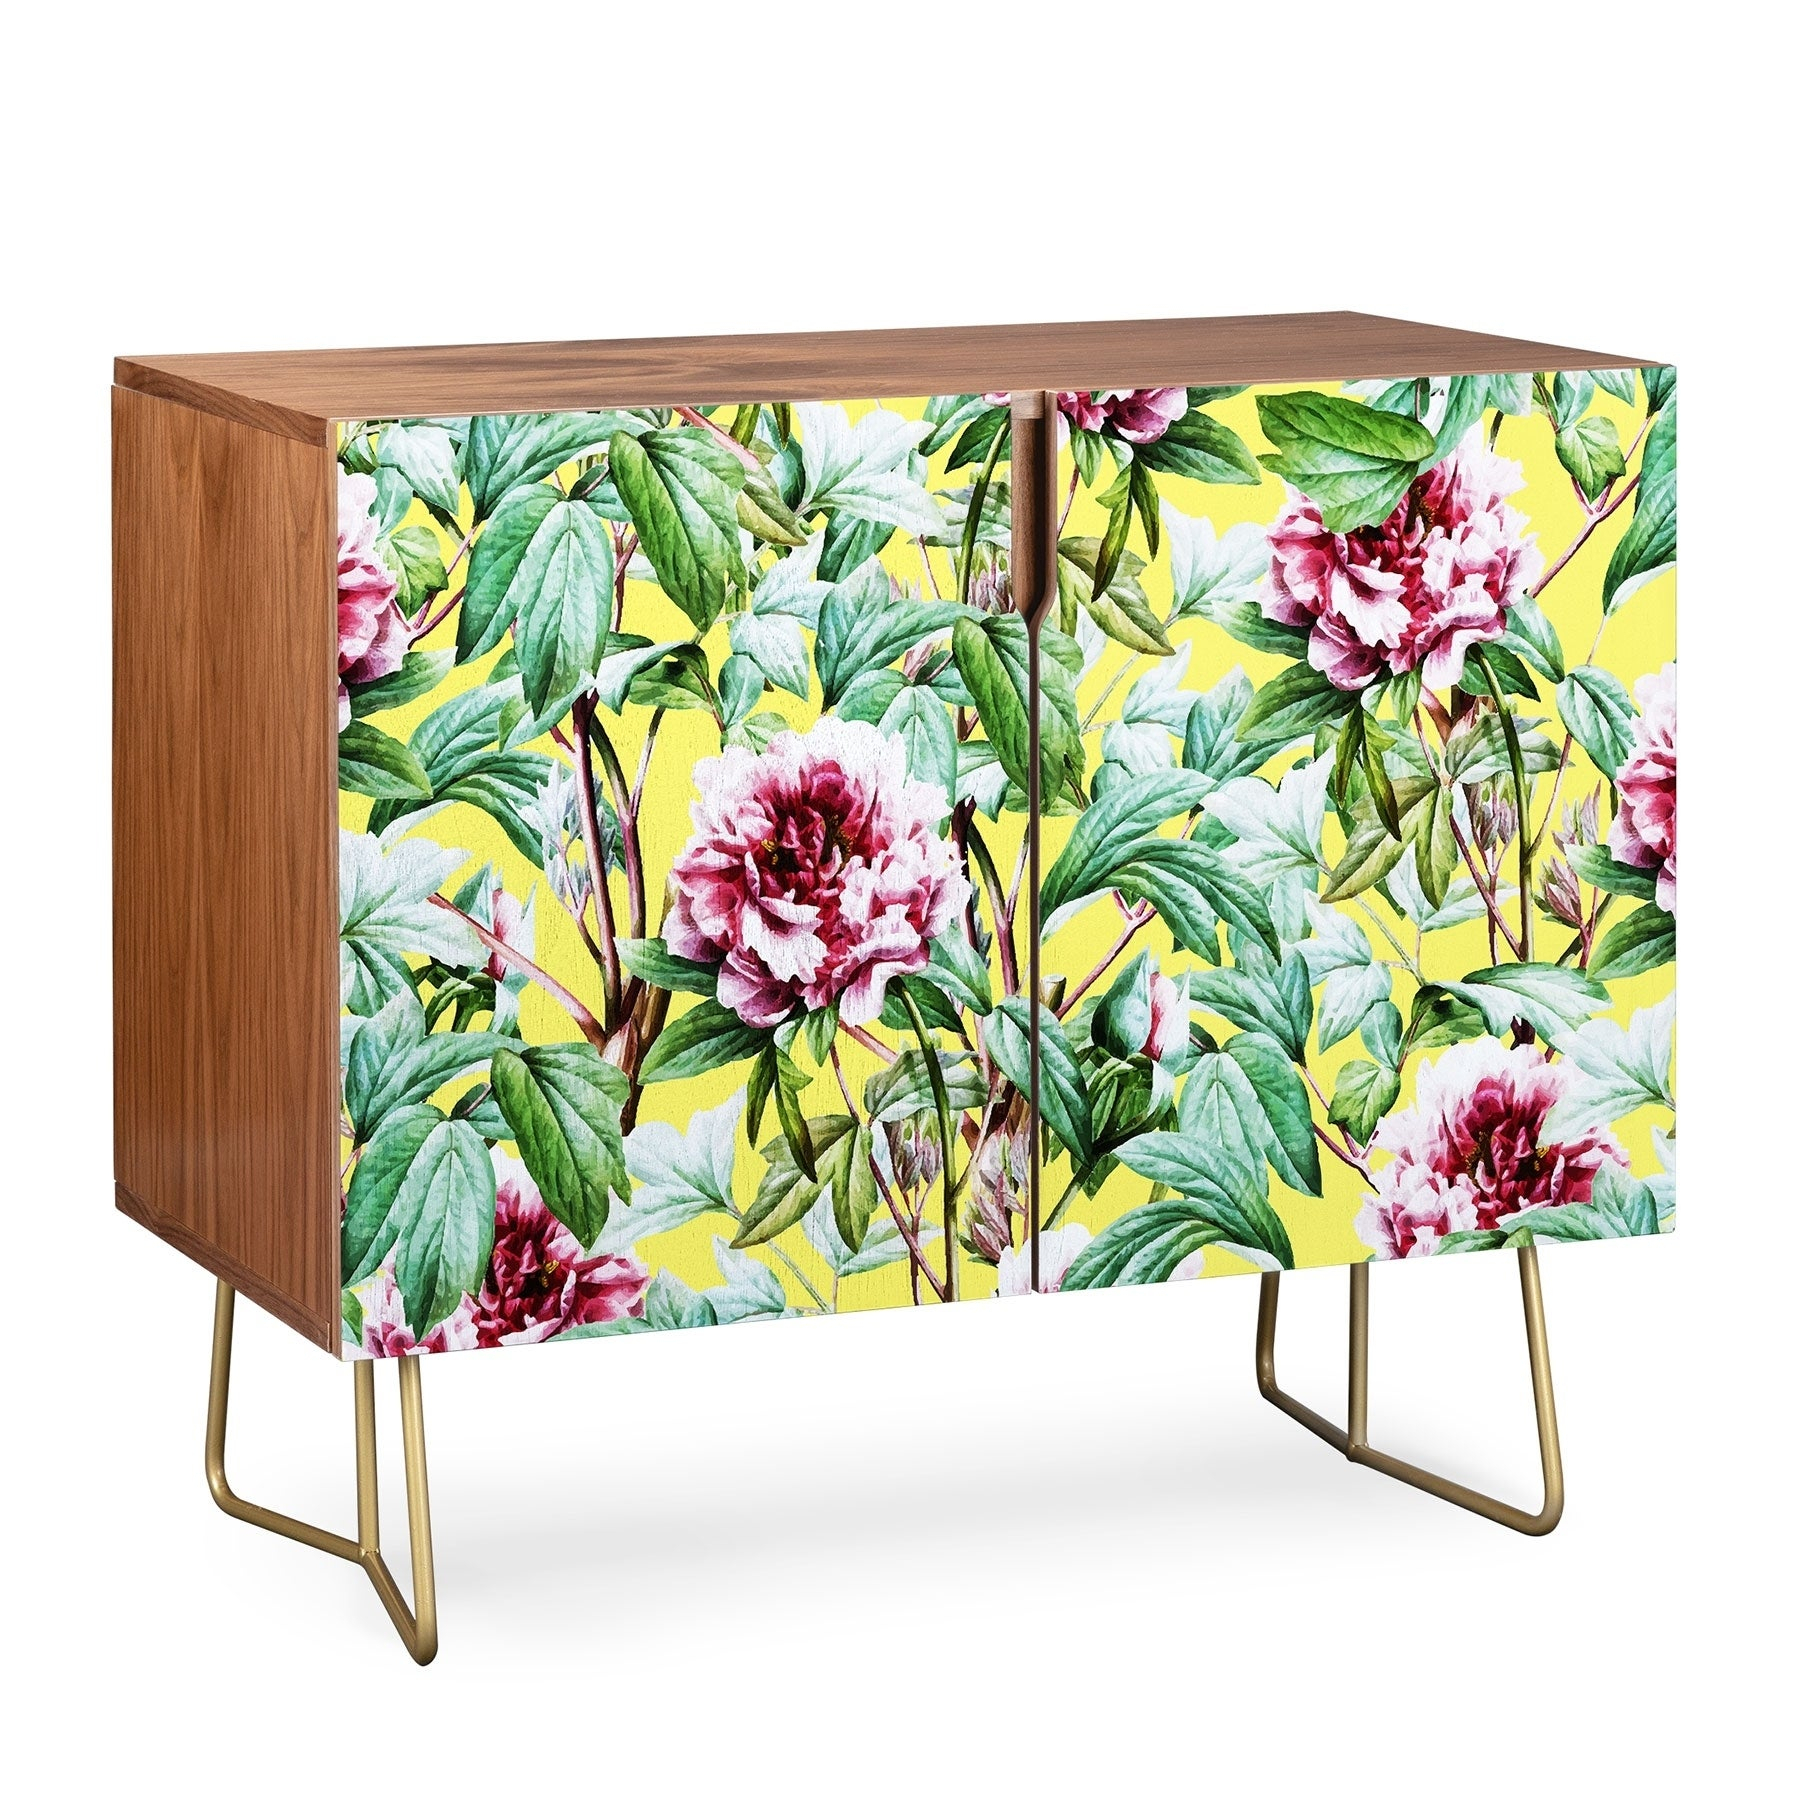 Deny Designs Yellow Flora Credenza (Birch Or Walnut, 2 Leg Options) With Floral Blush Yellow Credenzas (Photo 2 of 30)